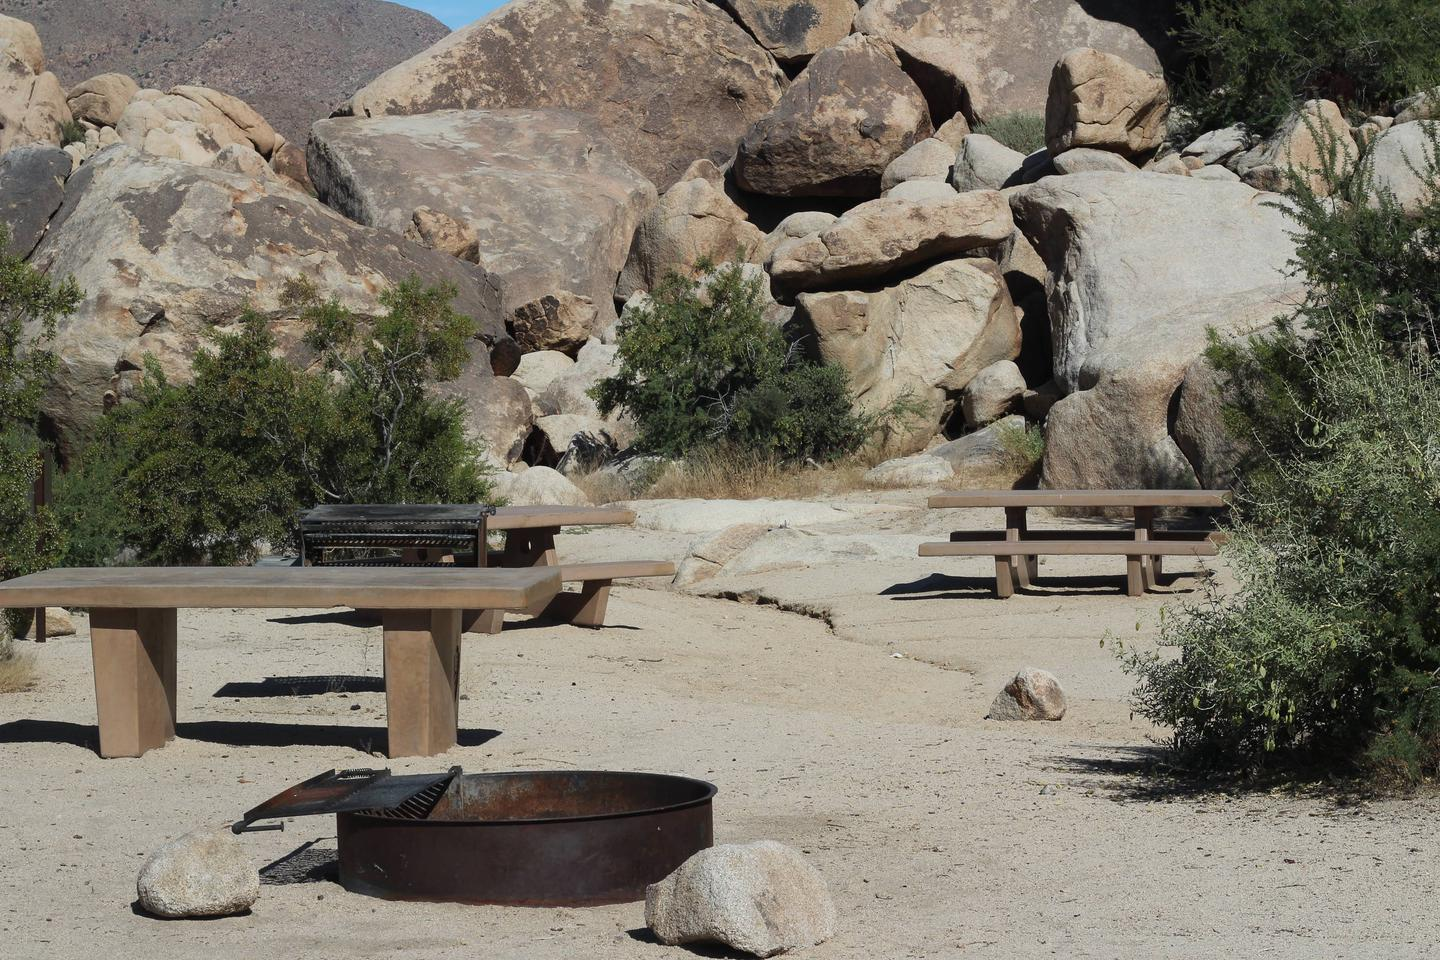 Indian Cove Group Site 11 AmenitiesAmenities: BBQ Grill, Tables and In-Ground Fire Pit